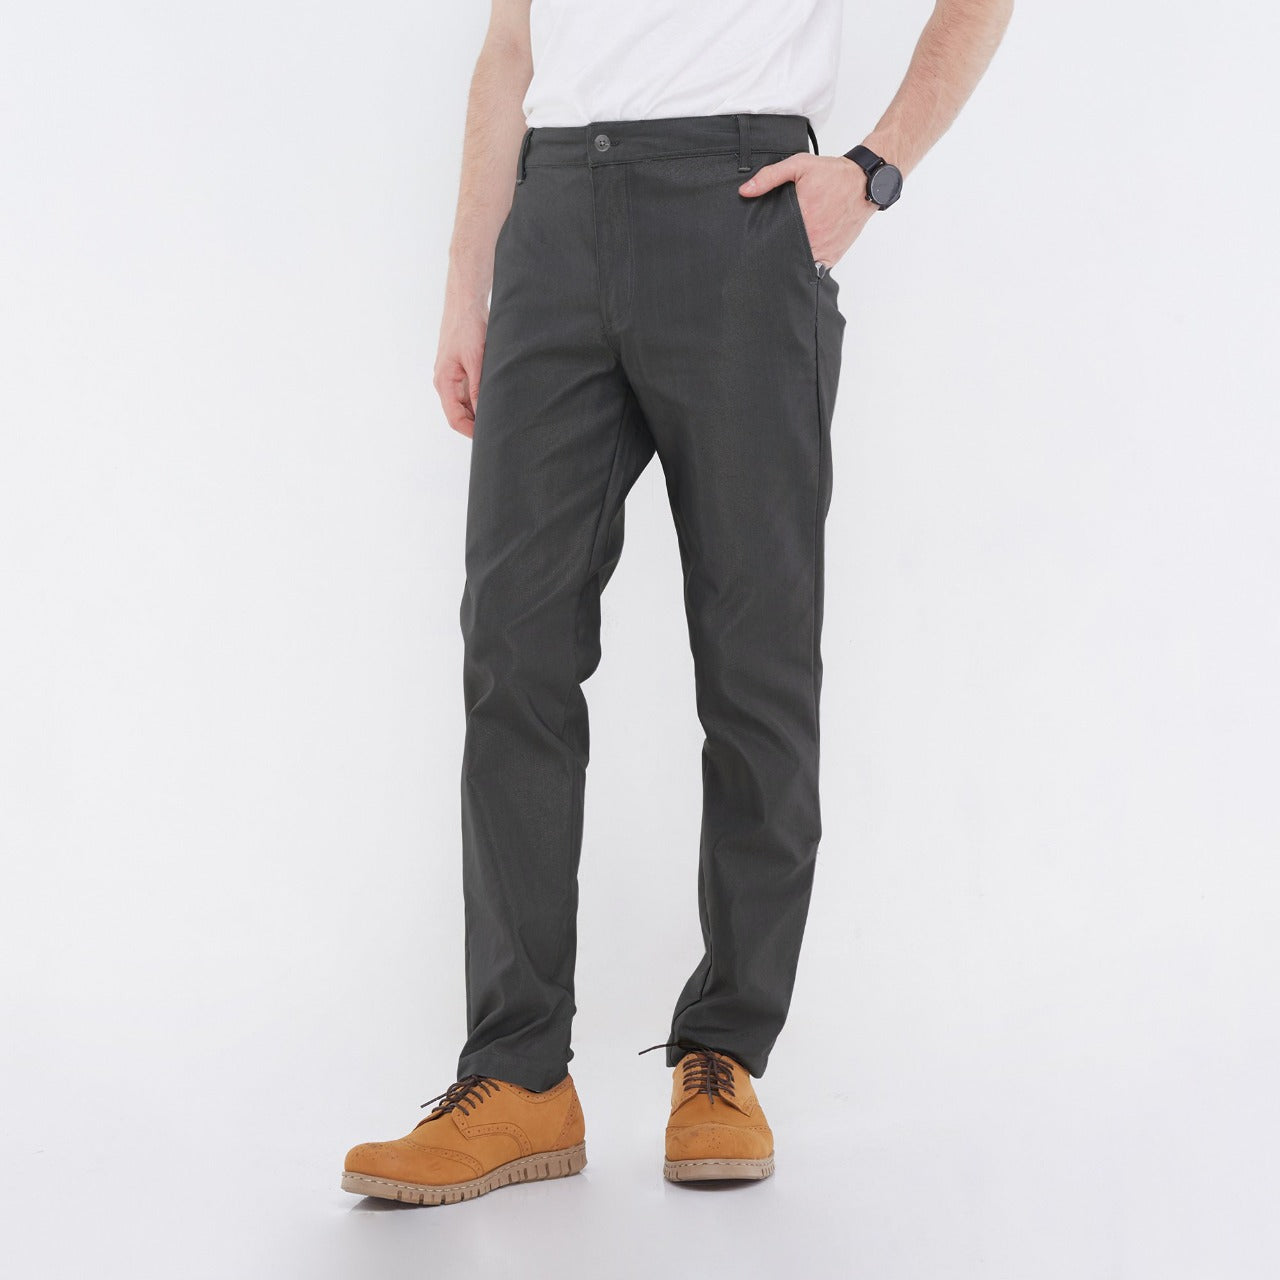 Fabio Dark Gray Chino Pants